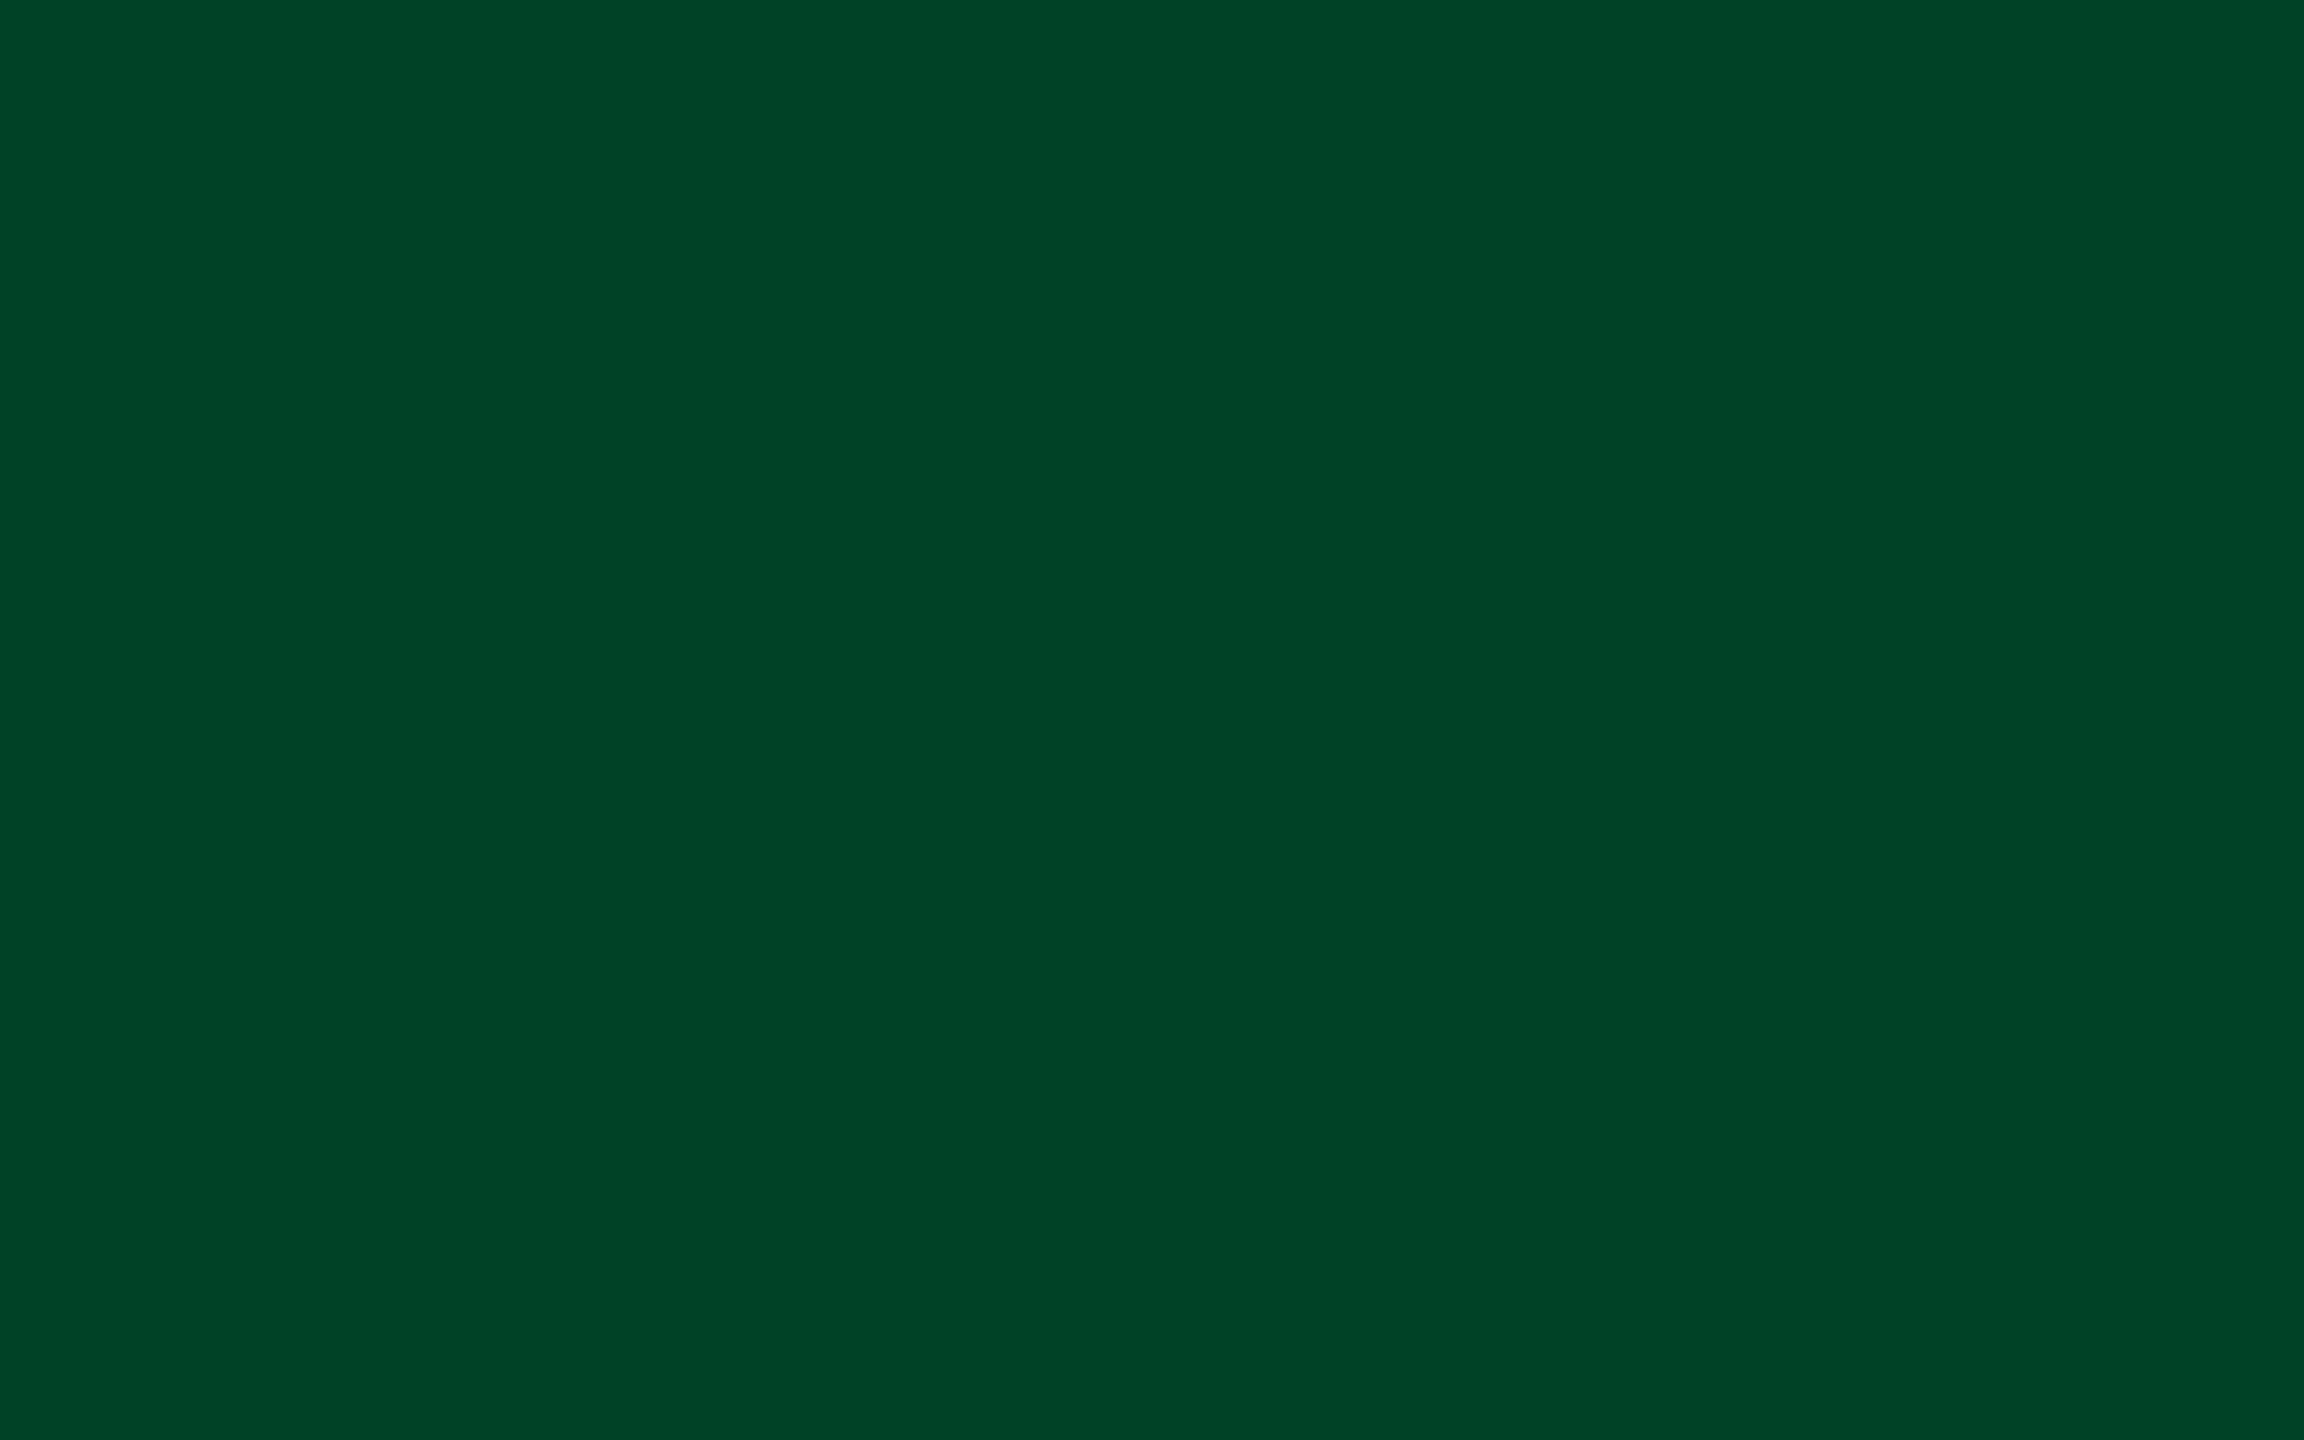 2304x1440 British Racing Green Solid Color Background